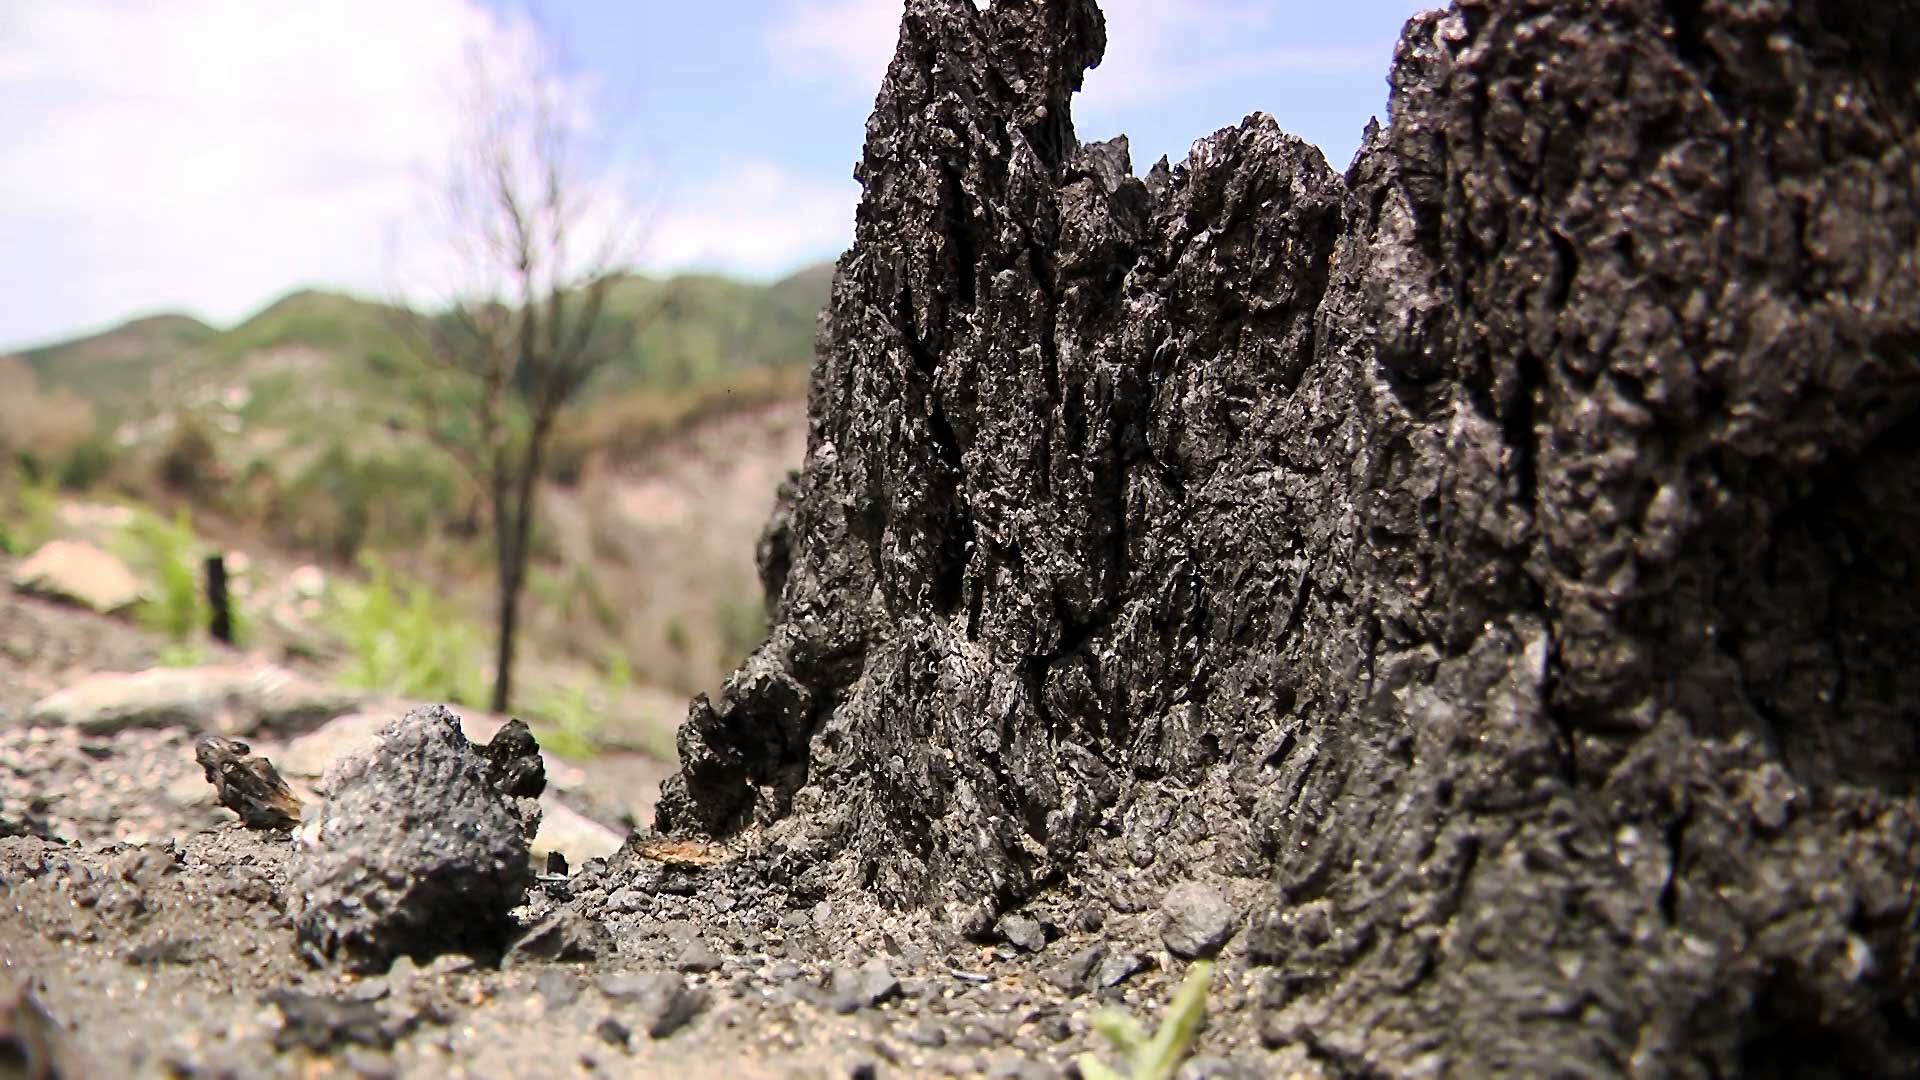 A charred tree stump from the Bighorn Fire on the Santa Catalina Mountains. July 2020.